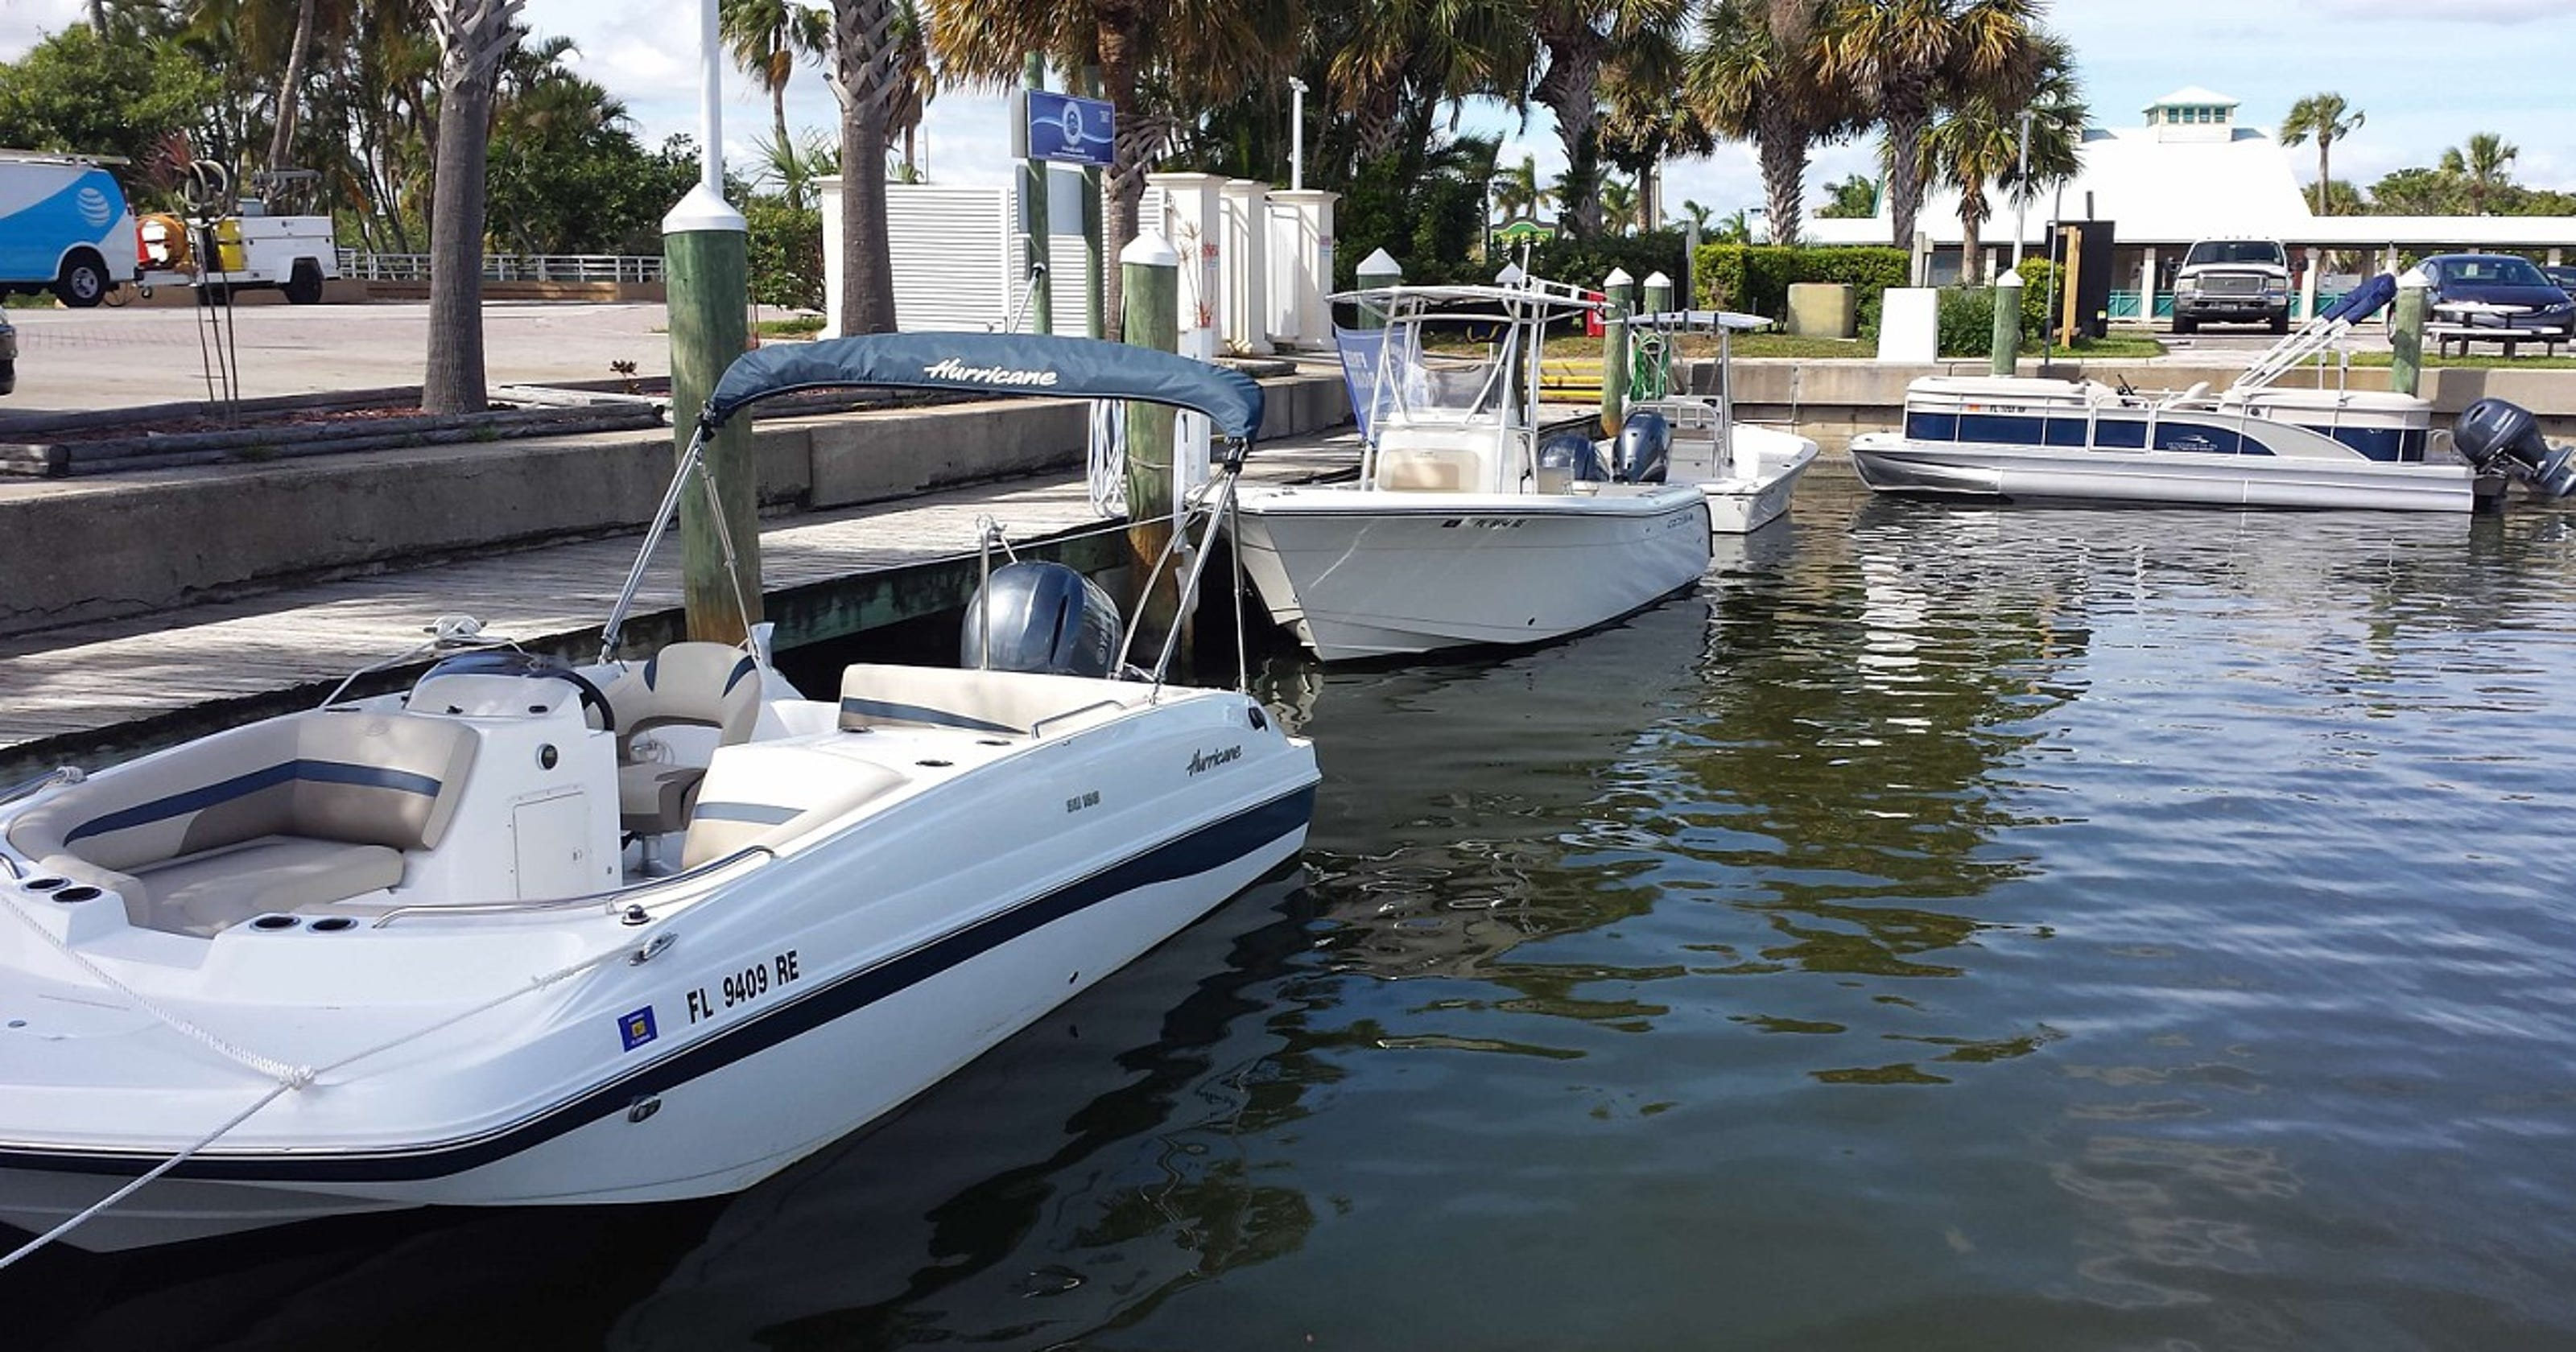 Freedom Boat Club opens in Fort Pierce City Marina